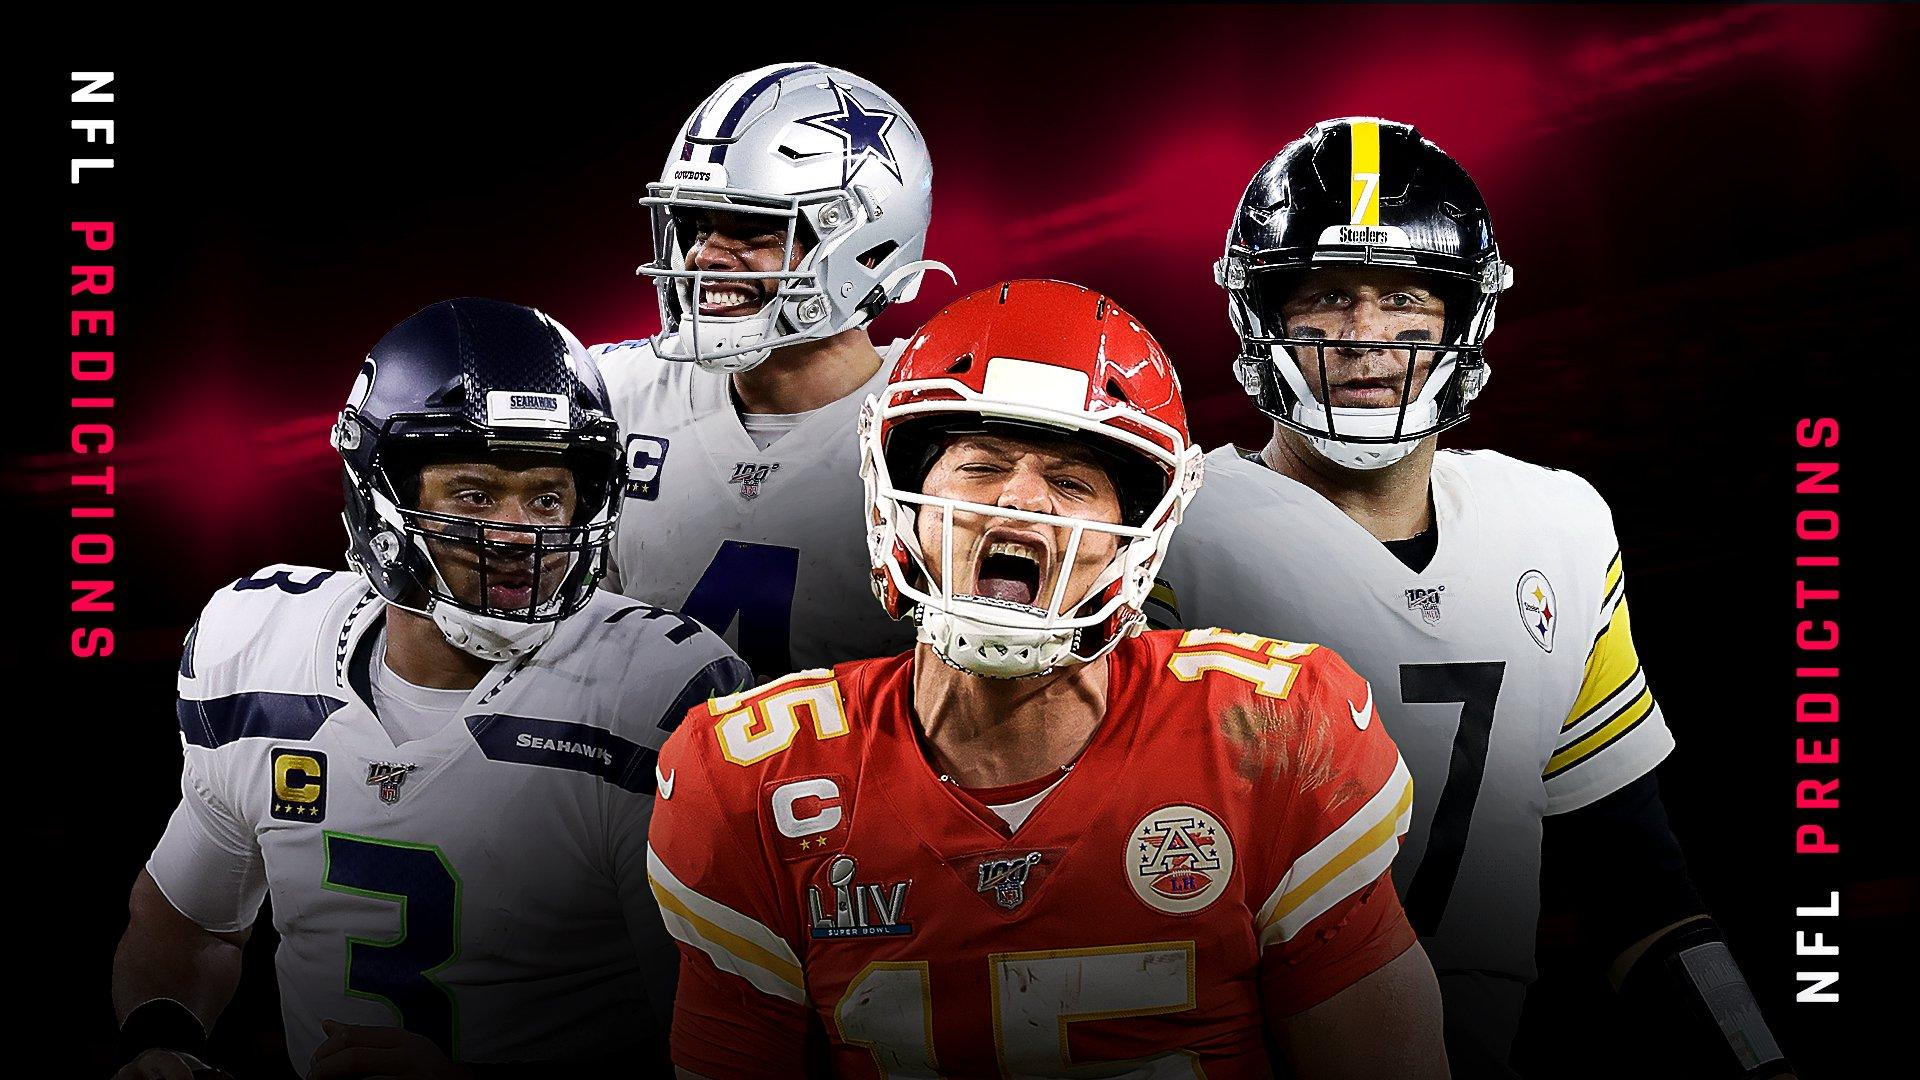 NFL predictions 2020: Final standings, playoff projections, Super Bowl 55 pick